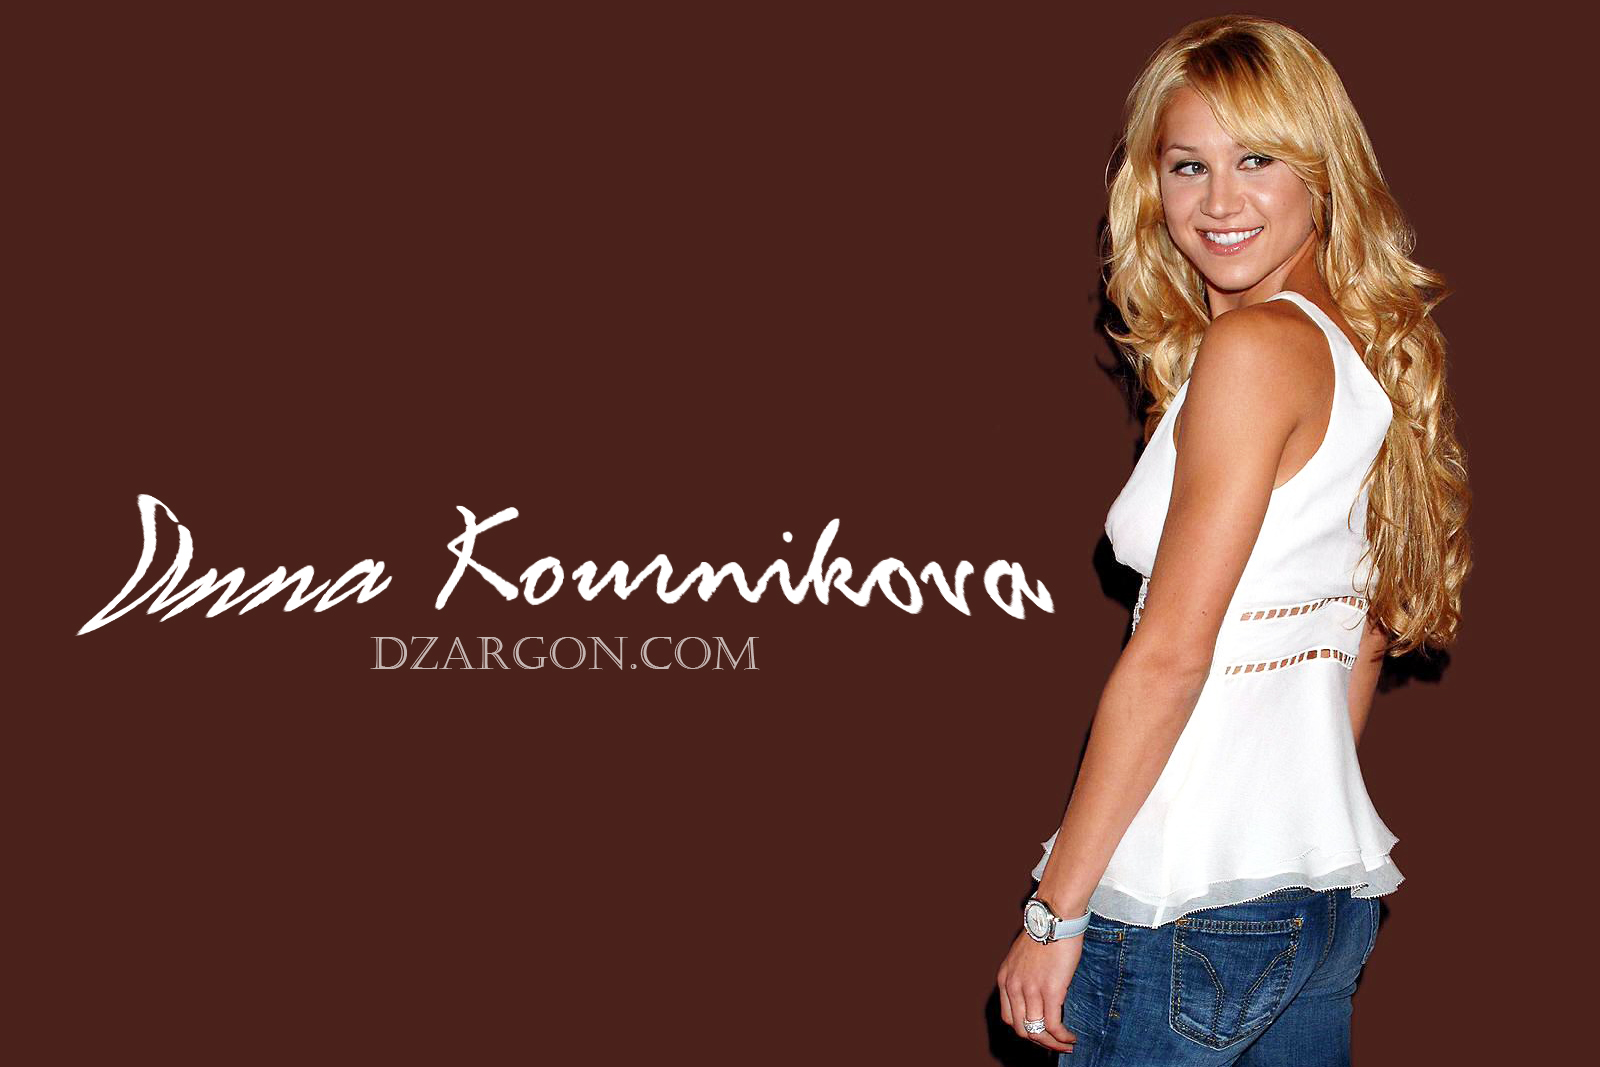 Wallpaper Foto atlit Cantik anna kournikova diet Wallpaper Foto atlit Cantik anna kournikova dating history Wallpaper Foto atlit Cantik anna kournikova dan enrique iglesias Wallpaper Foto atlit Cantik anna kournikova dating Wallpaper Foto atlit Cantik anna kournikova dead Wallpaper Foto atlit Cantik anna kournikova divorce Wallpaper Foto atlit Cantik anna kournikova date of birth